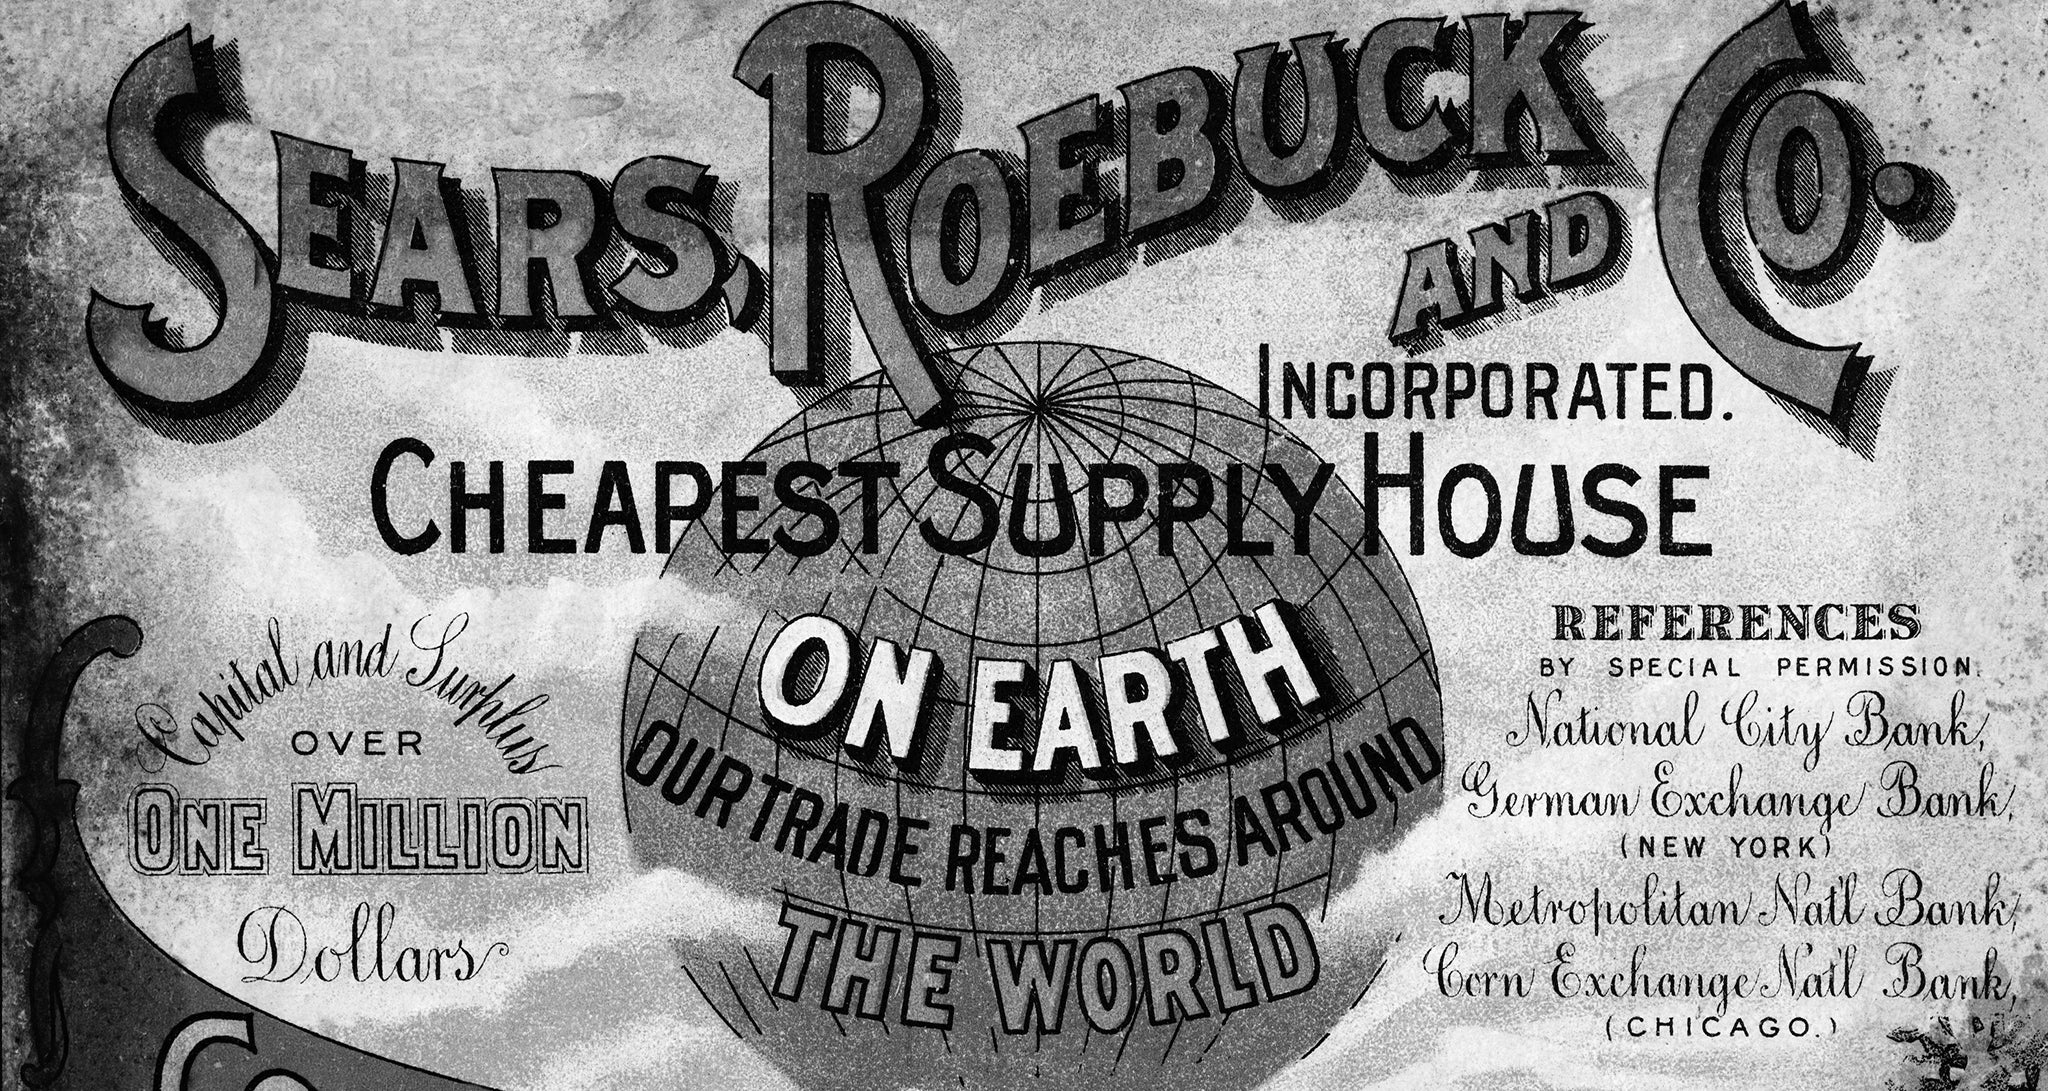 How Digital Currency is Like an Old Sears and Roebuck Catalog